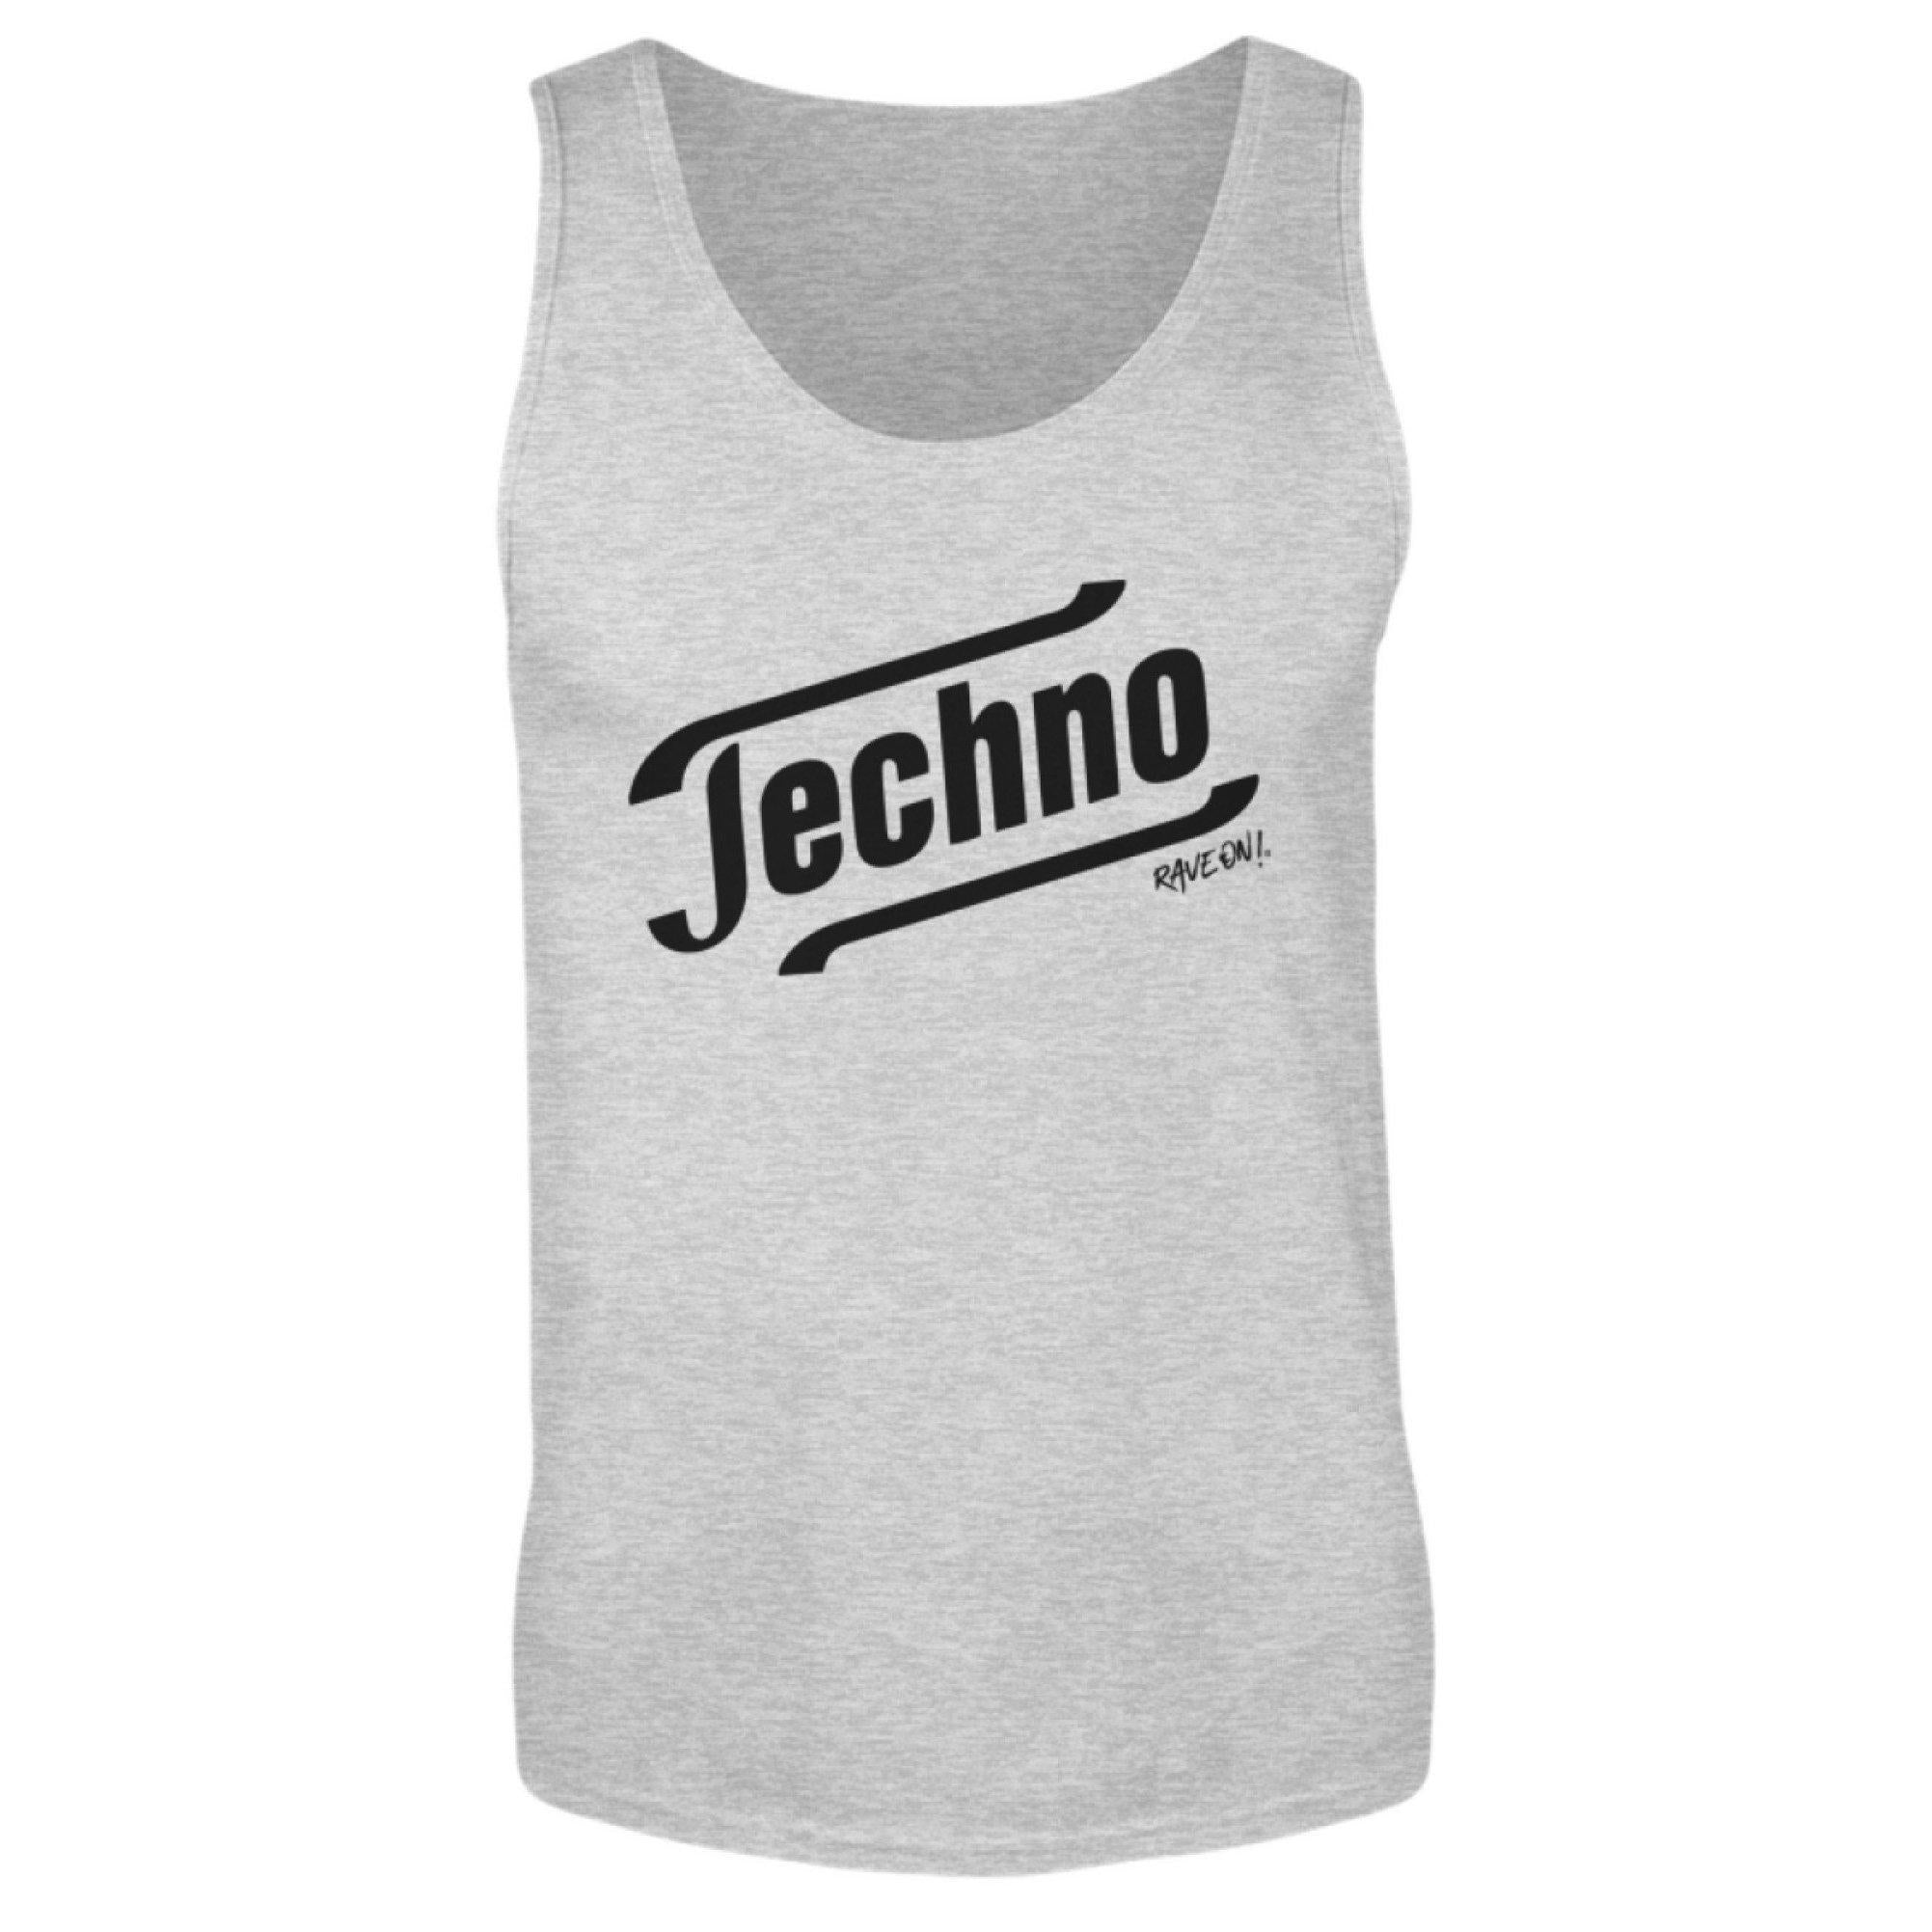 Techno Tempo White -Rave On!® - Herren Tanktop Herren Tank-Top Sport Grey (Heather) / S - Rave On!® der Club & Techno Szene Shop für Coole Junge Mode Streetwear Style & Fashion Outfits + Sexy Festival 420 Stuff